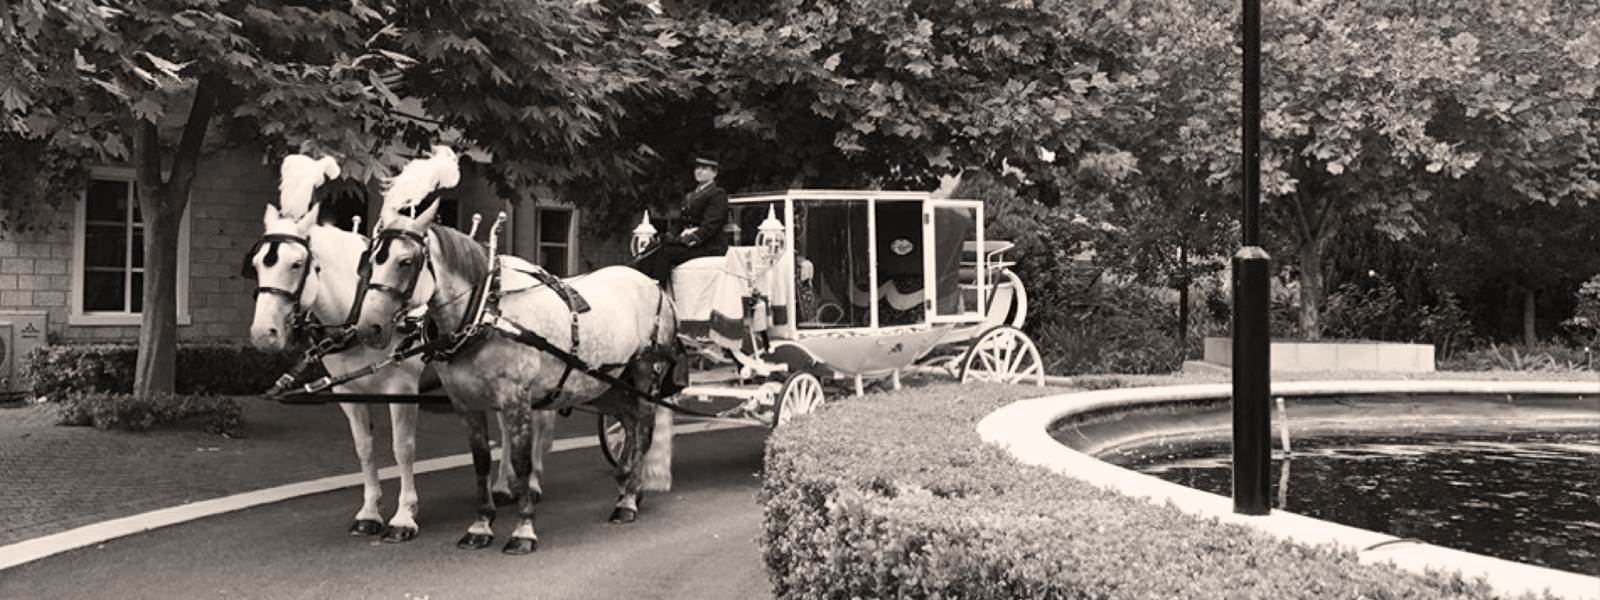 Perth-Horse-&-Carriage-Peel-Manor